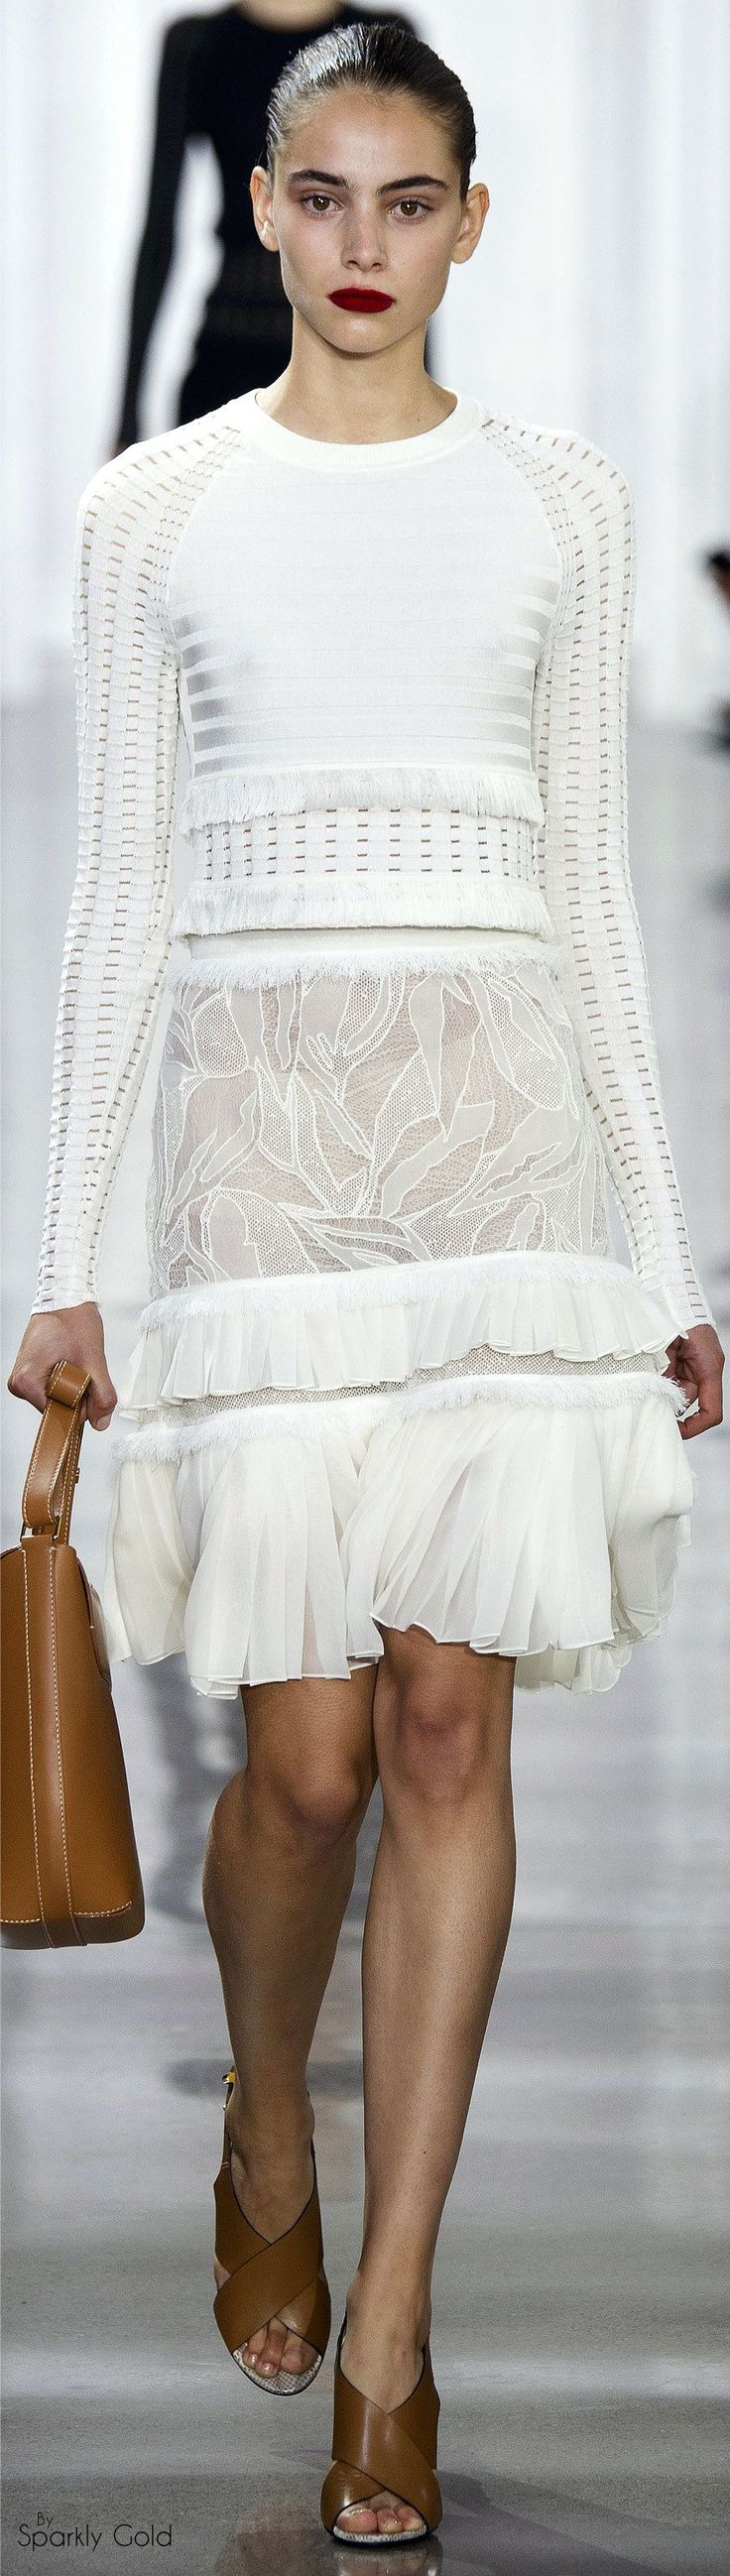 Jason Wu Spring 2016 women fashion outfit clothing style apparel @roressclothes closet ideas